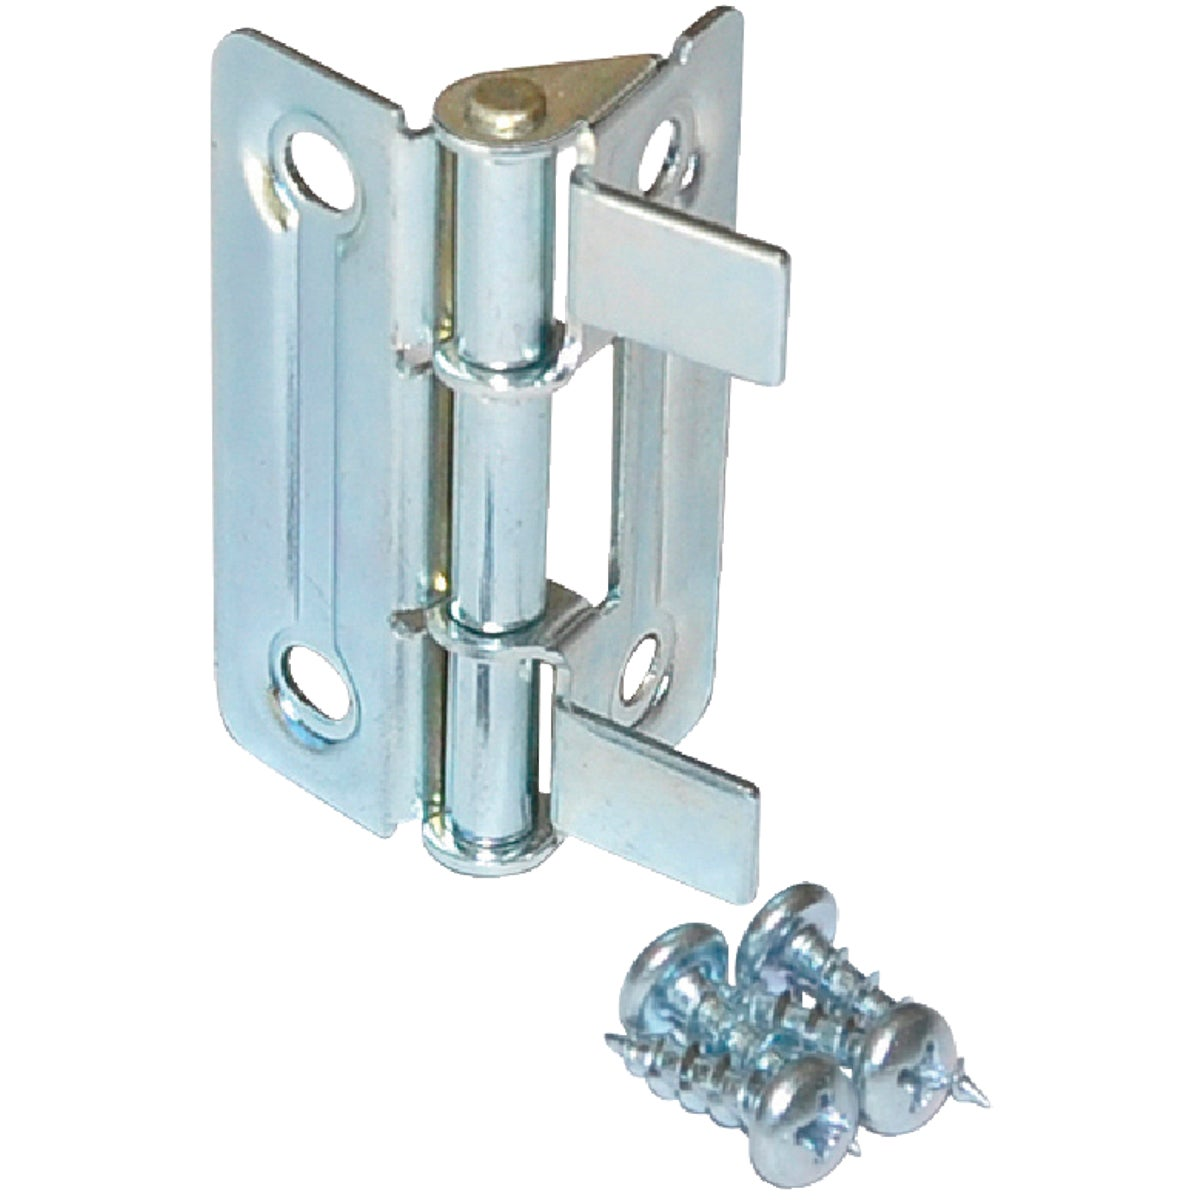 DULL BRASS HINGE - 1805PPK2 by Johnson Products